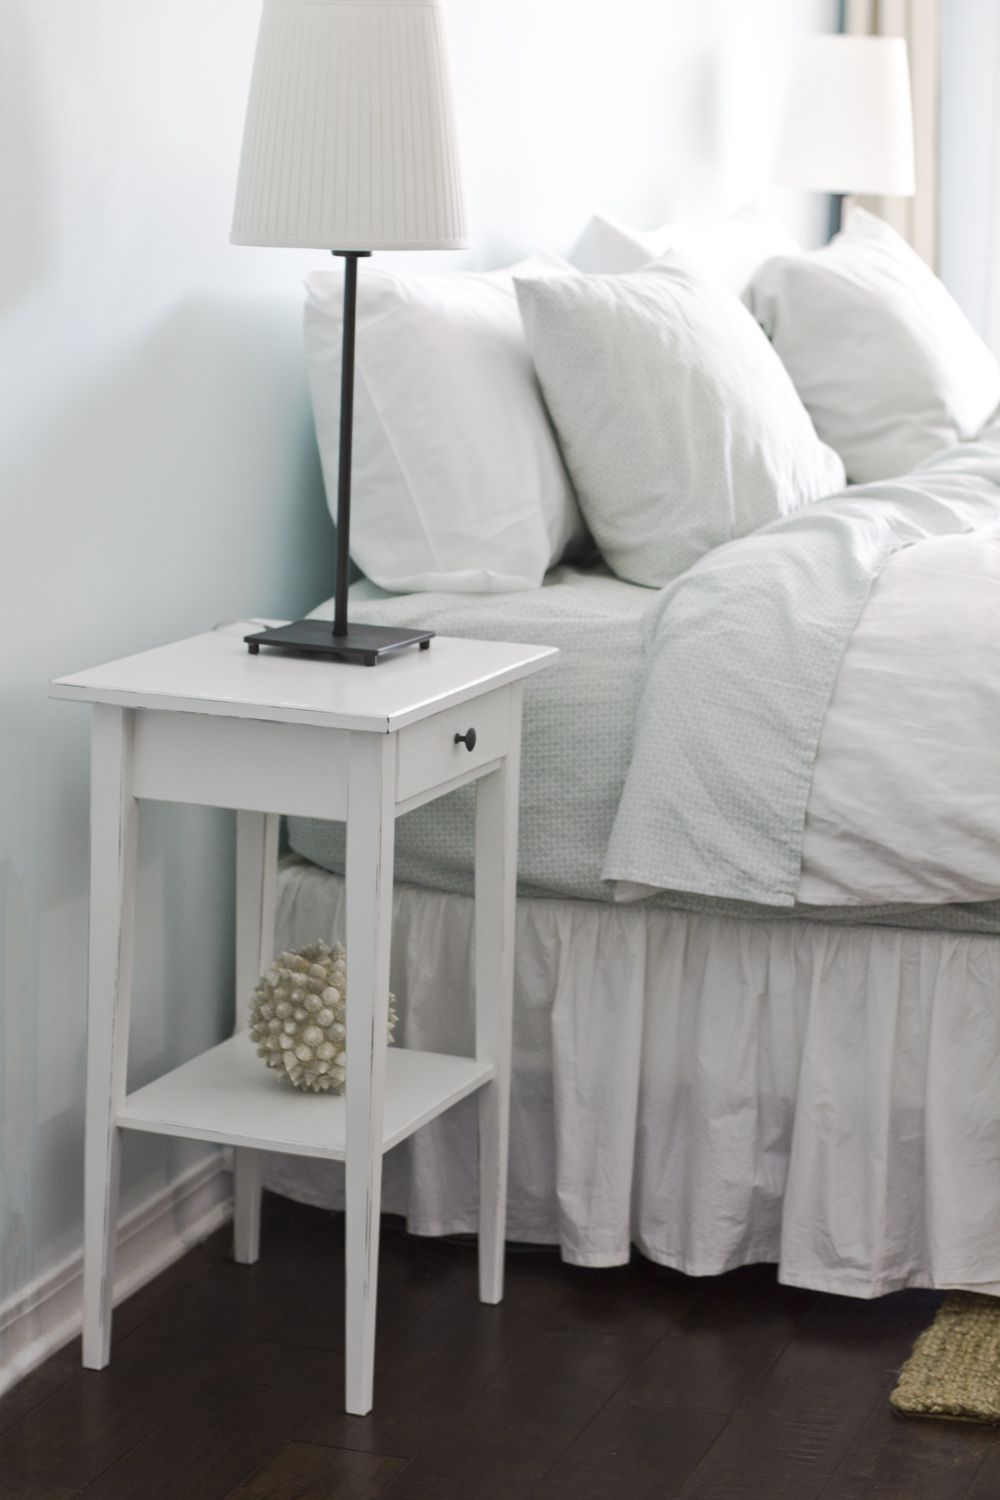 simple diy bedside nightstand table with storage and drawer for diy